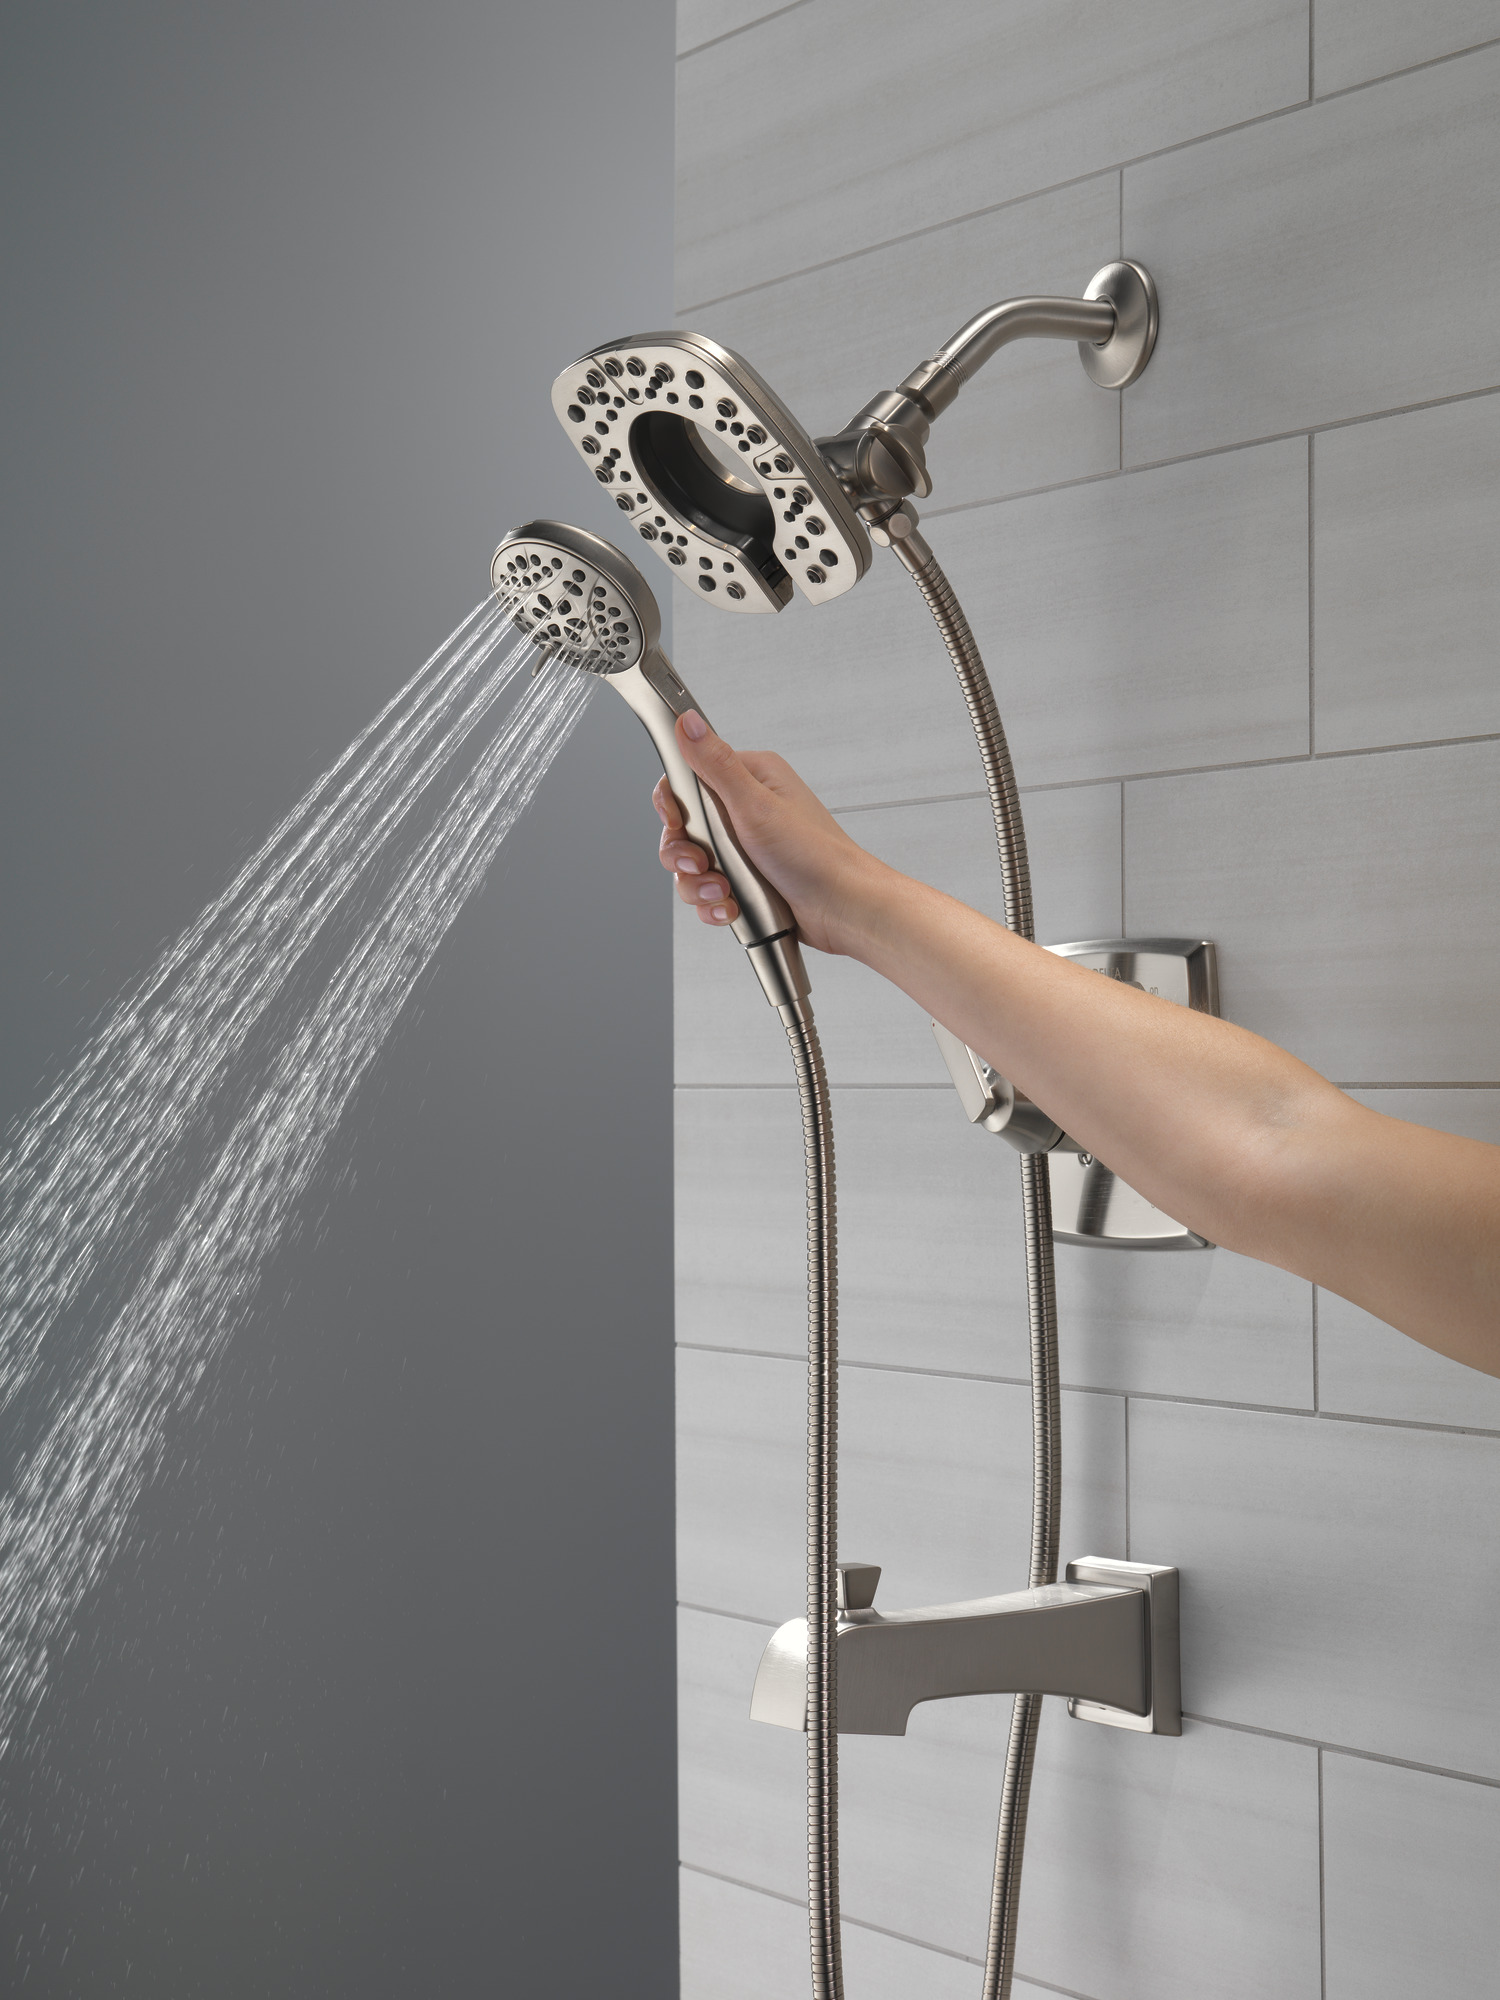 Delta Ashlyn Collection Stainless Steel Finish Tub Shower Faucet with Hand Shower Detached Running Full Body Spray Setting